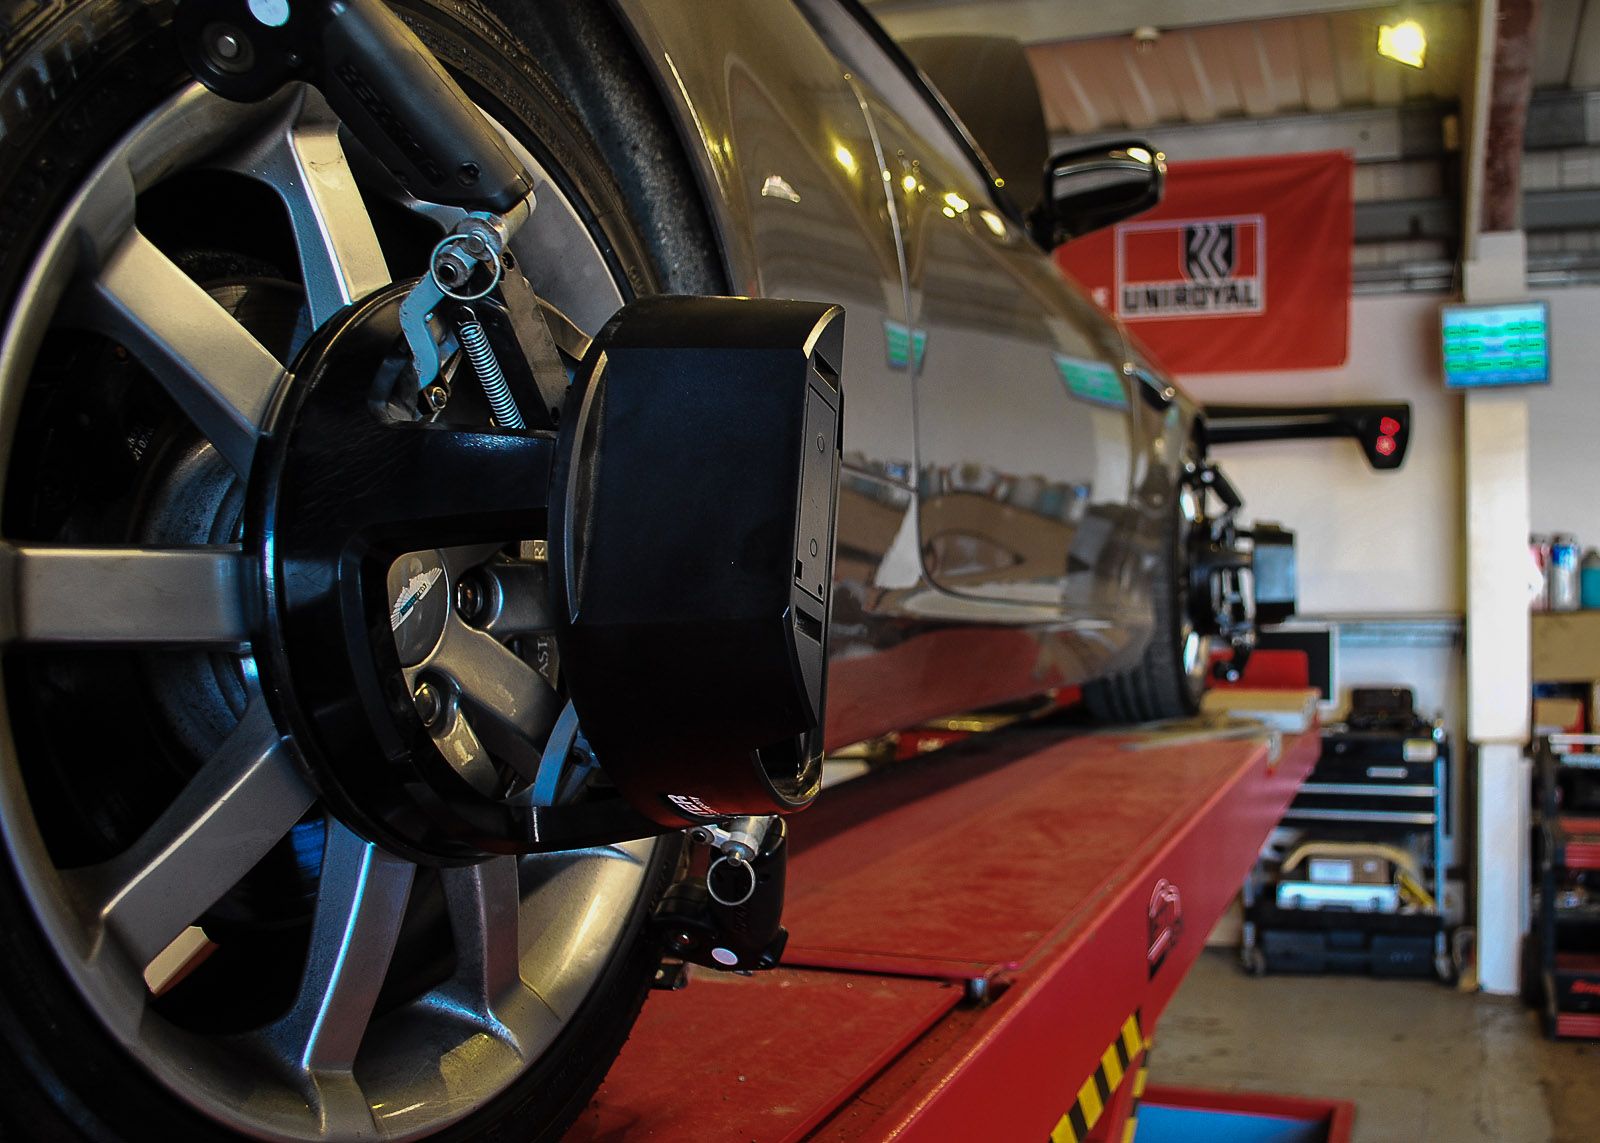 Tracking / Wheel Alignment – A1 Tyres